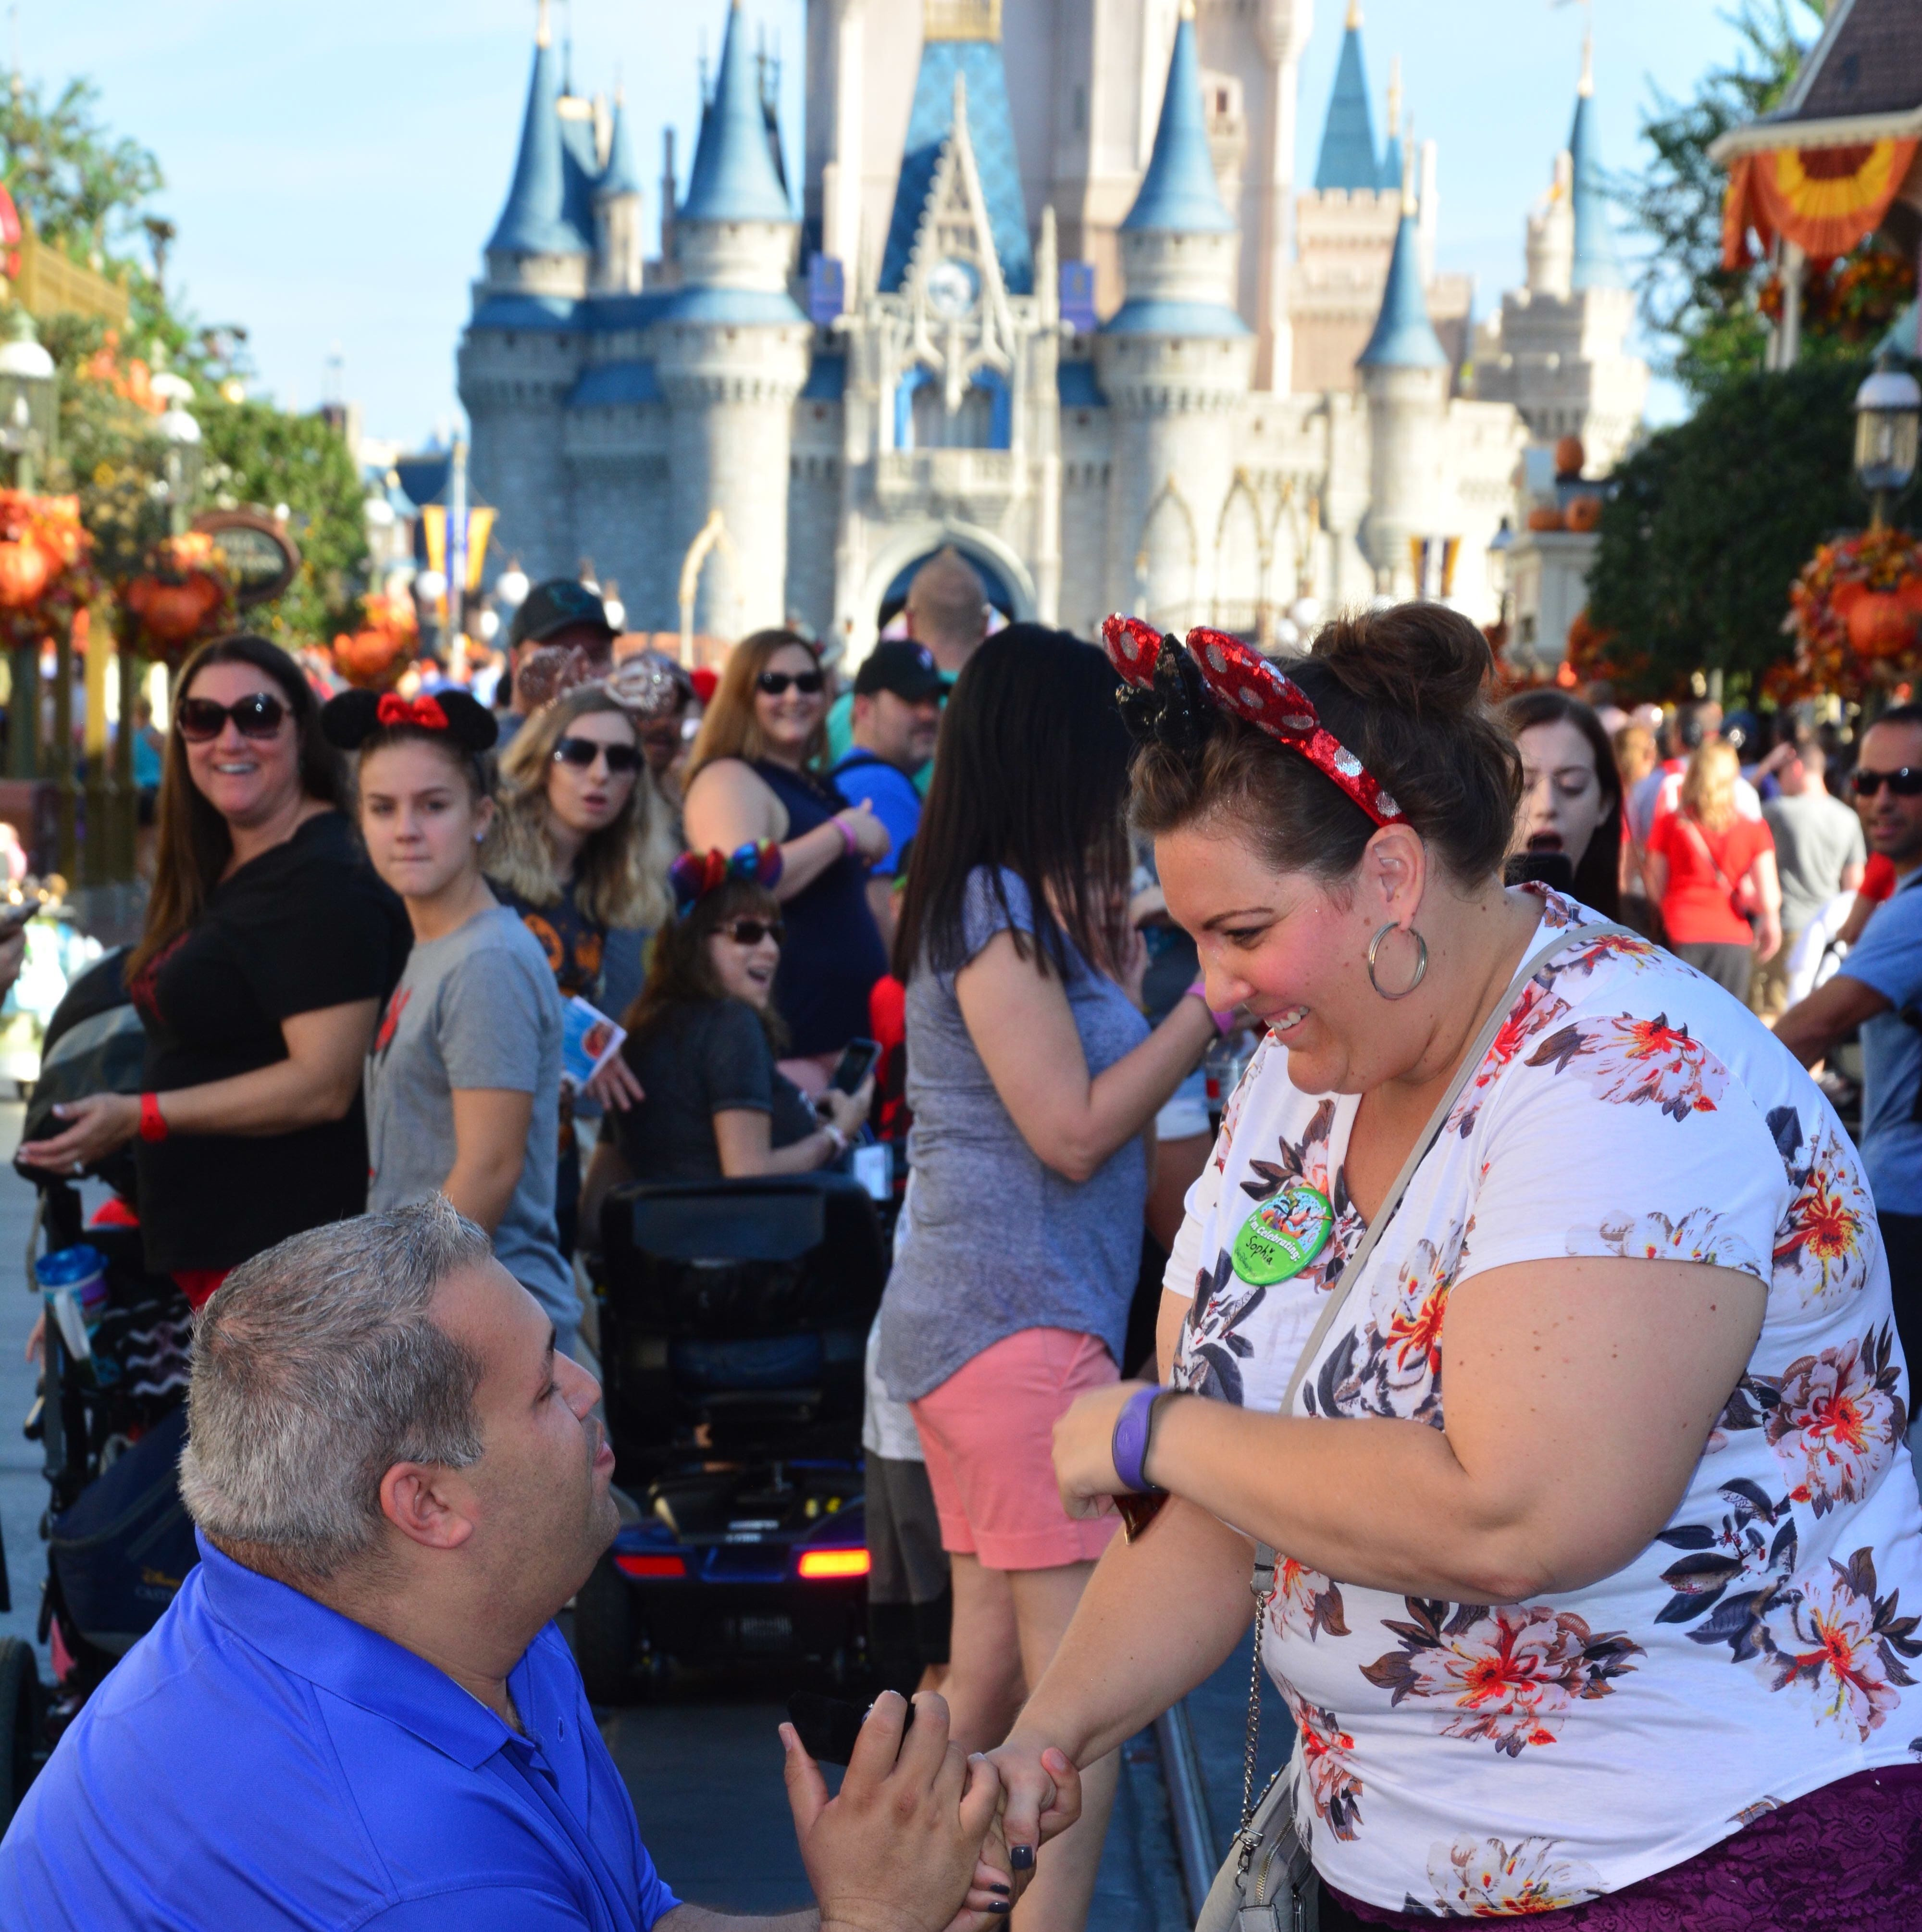 Congrats, best wishes to Port St. Lucie's Jason Romano and Natasha Mardis, after he proposes at Cinderella's Castle in Walt Disney World